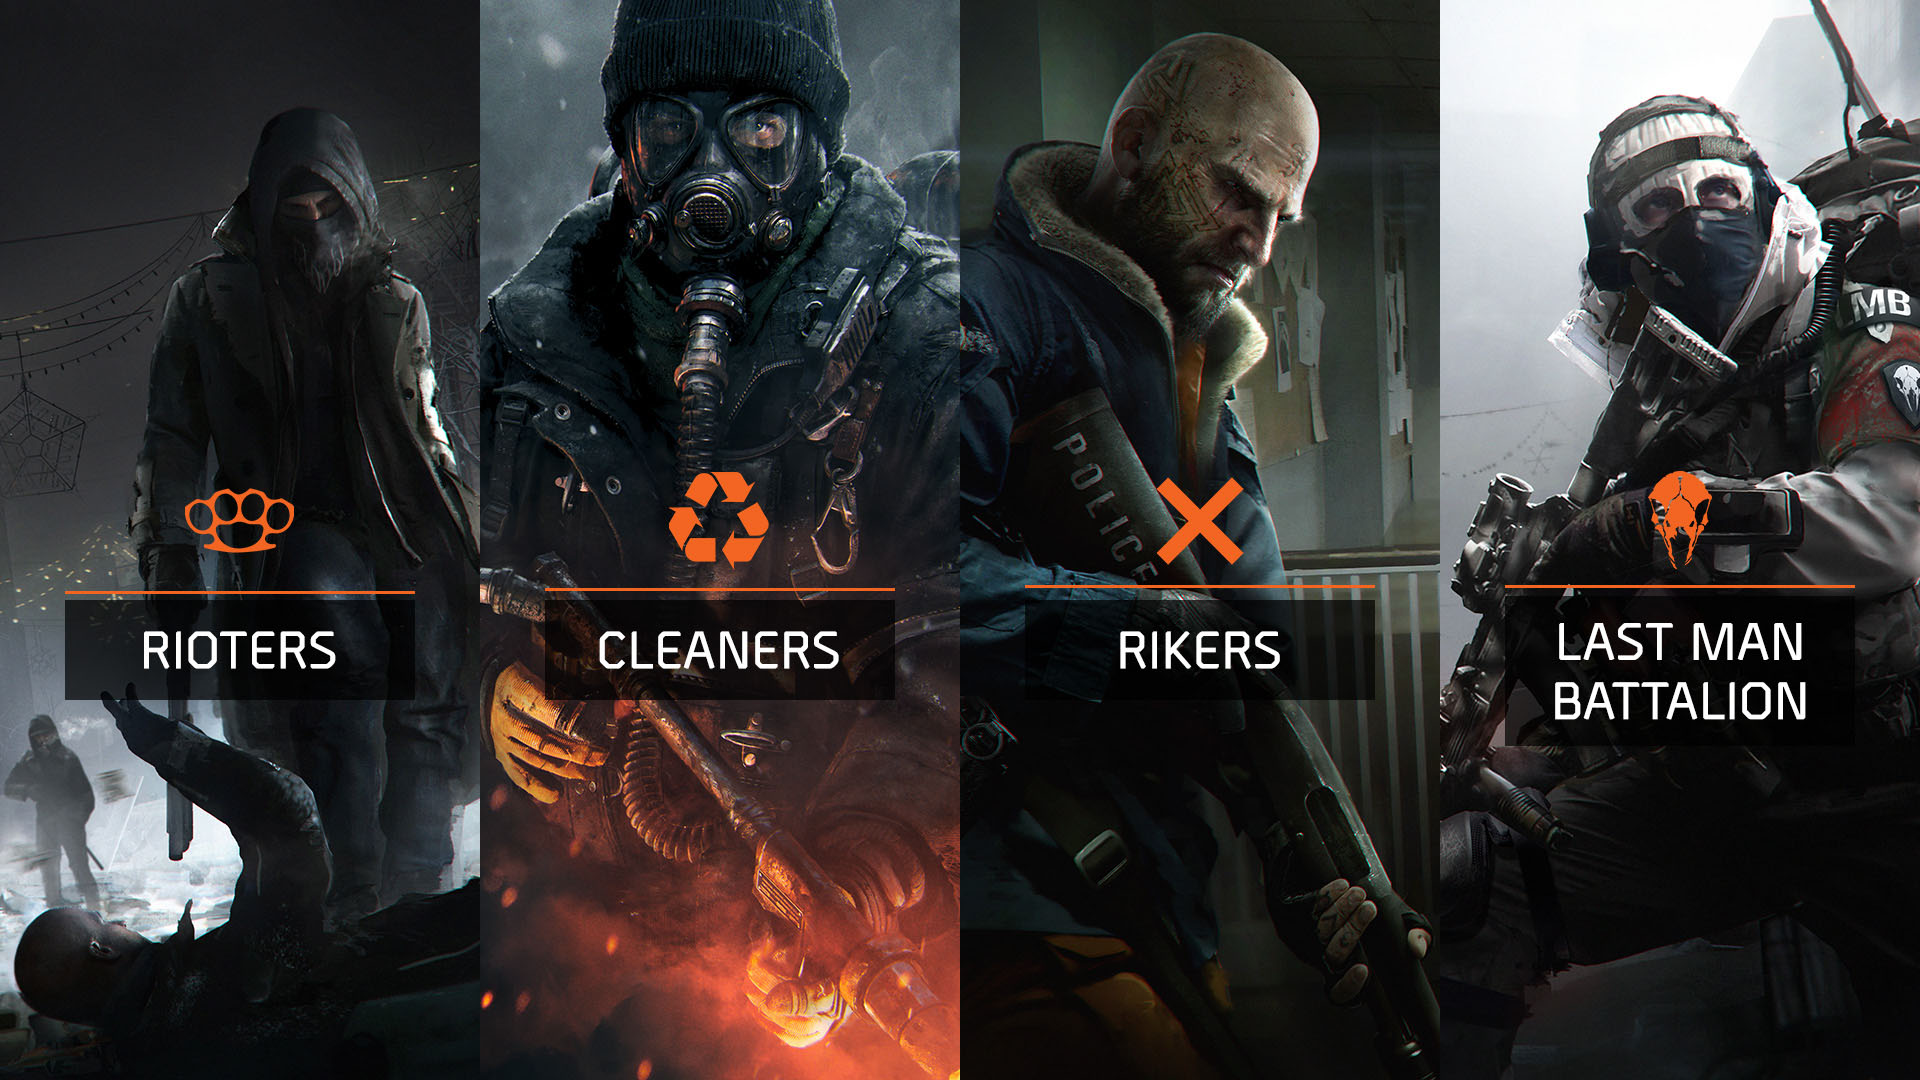 The Division's enemy faction